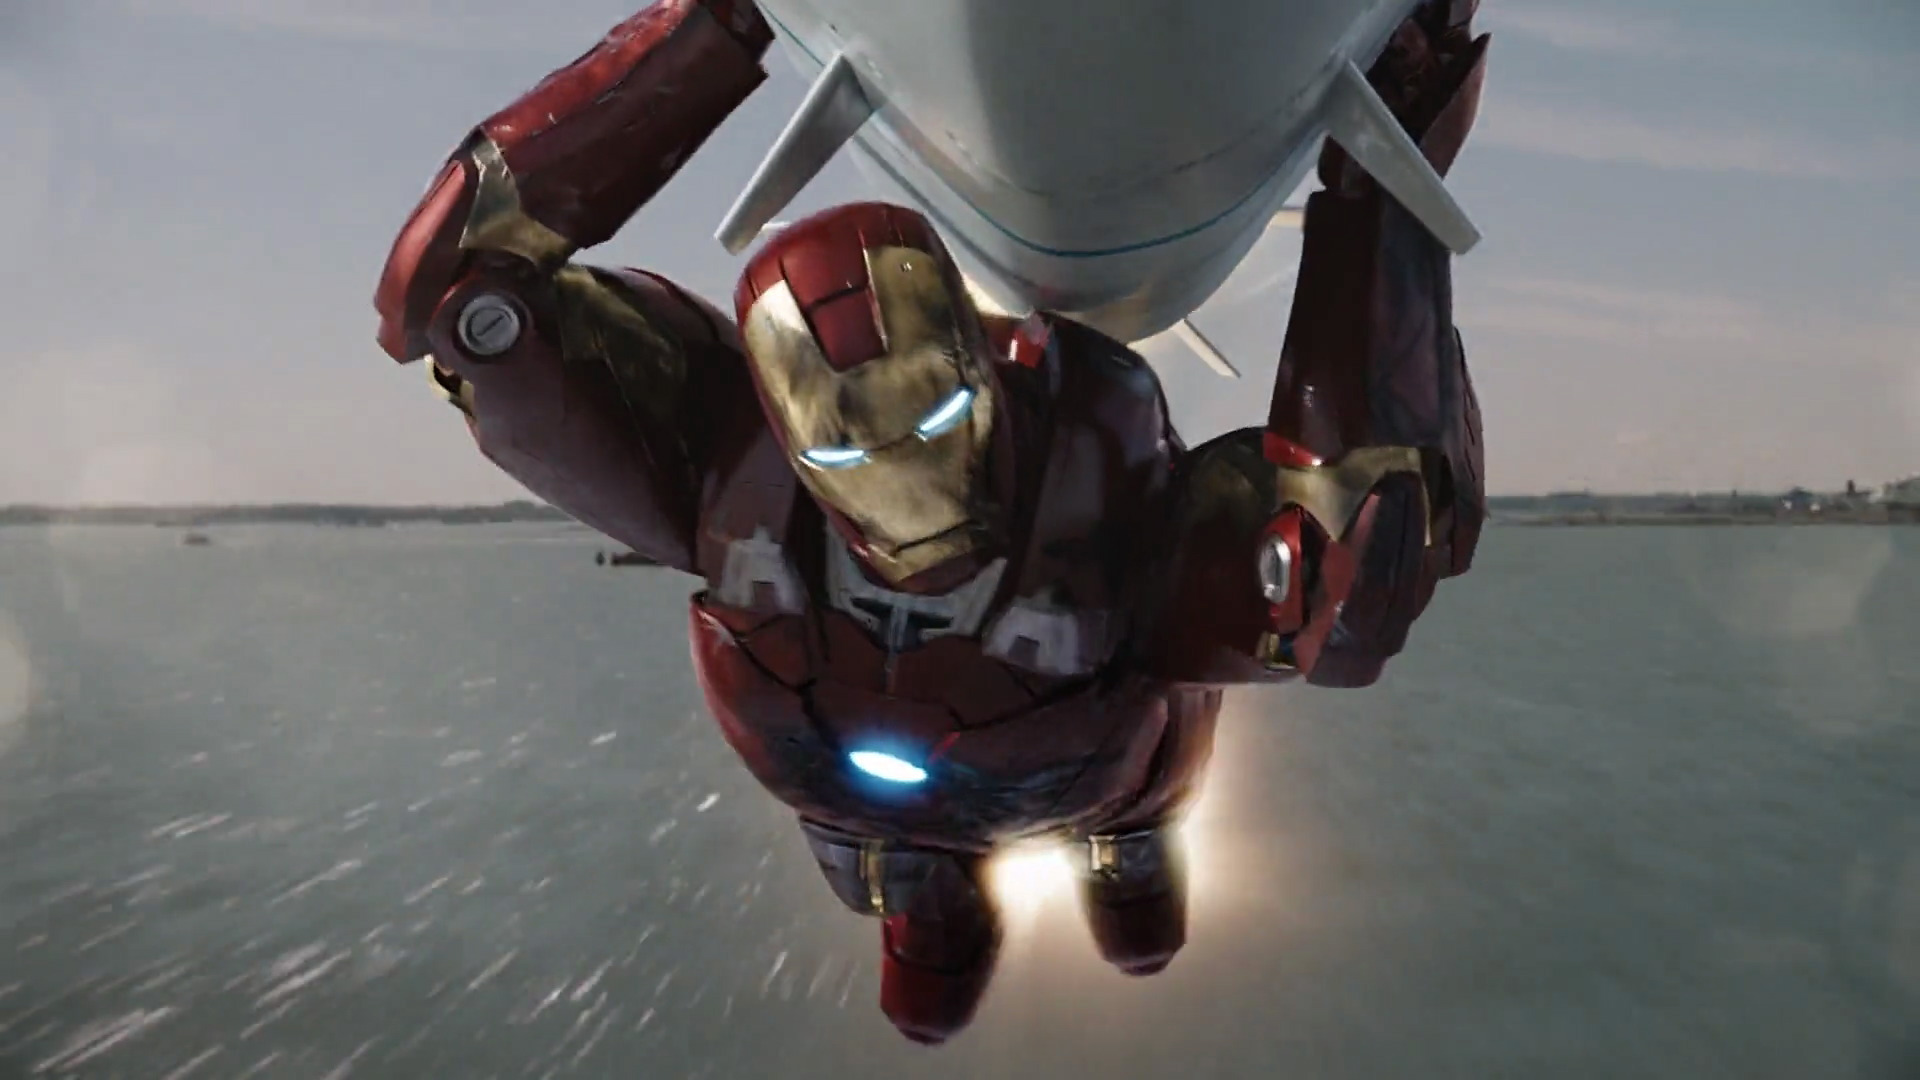 Iron Man in The Avengers - Iron Man Photo (36091966) - Fanpop